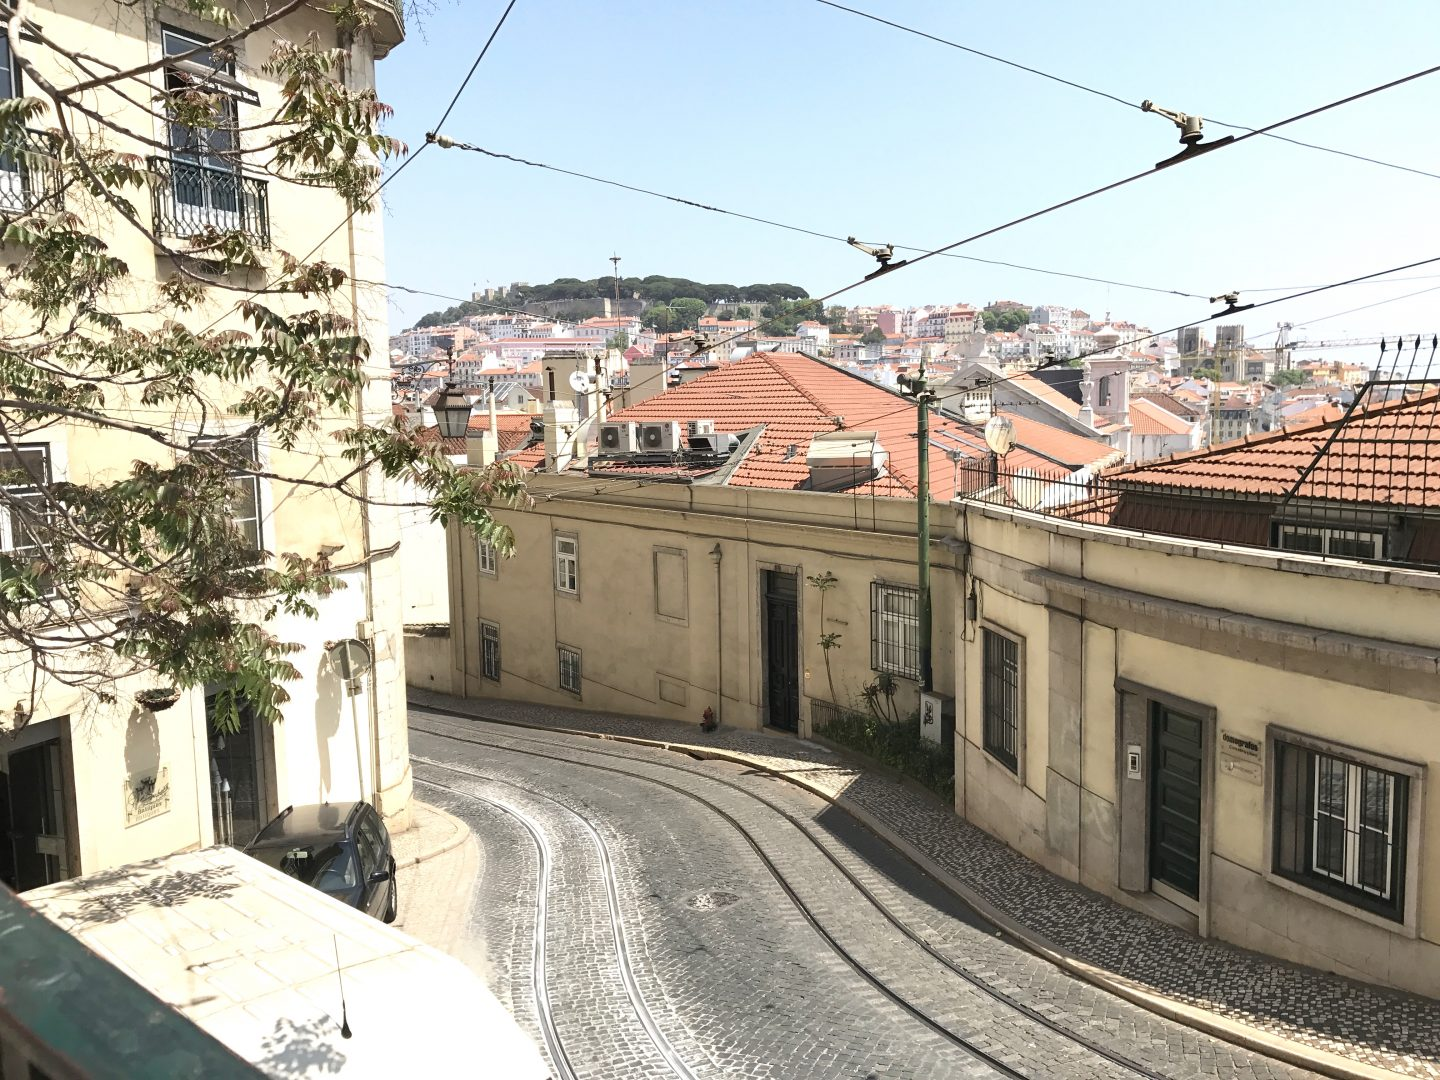 The lisbon guide 1 - ByMeryl